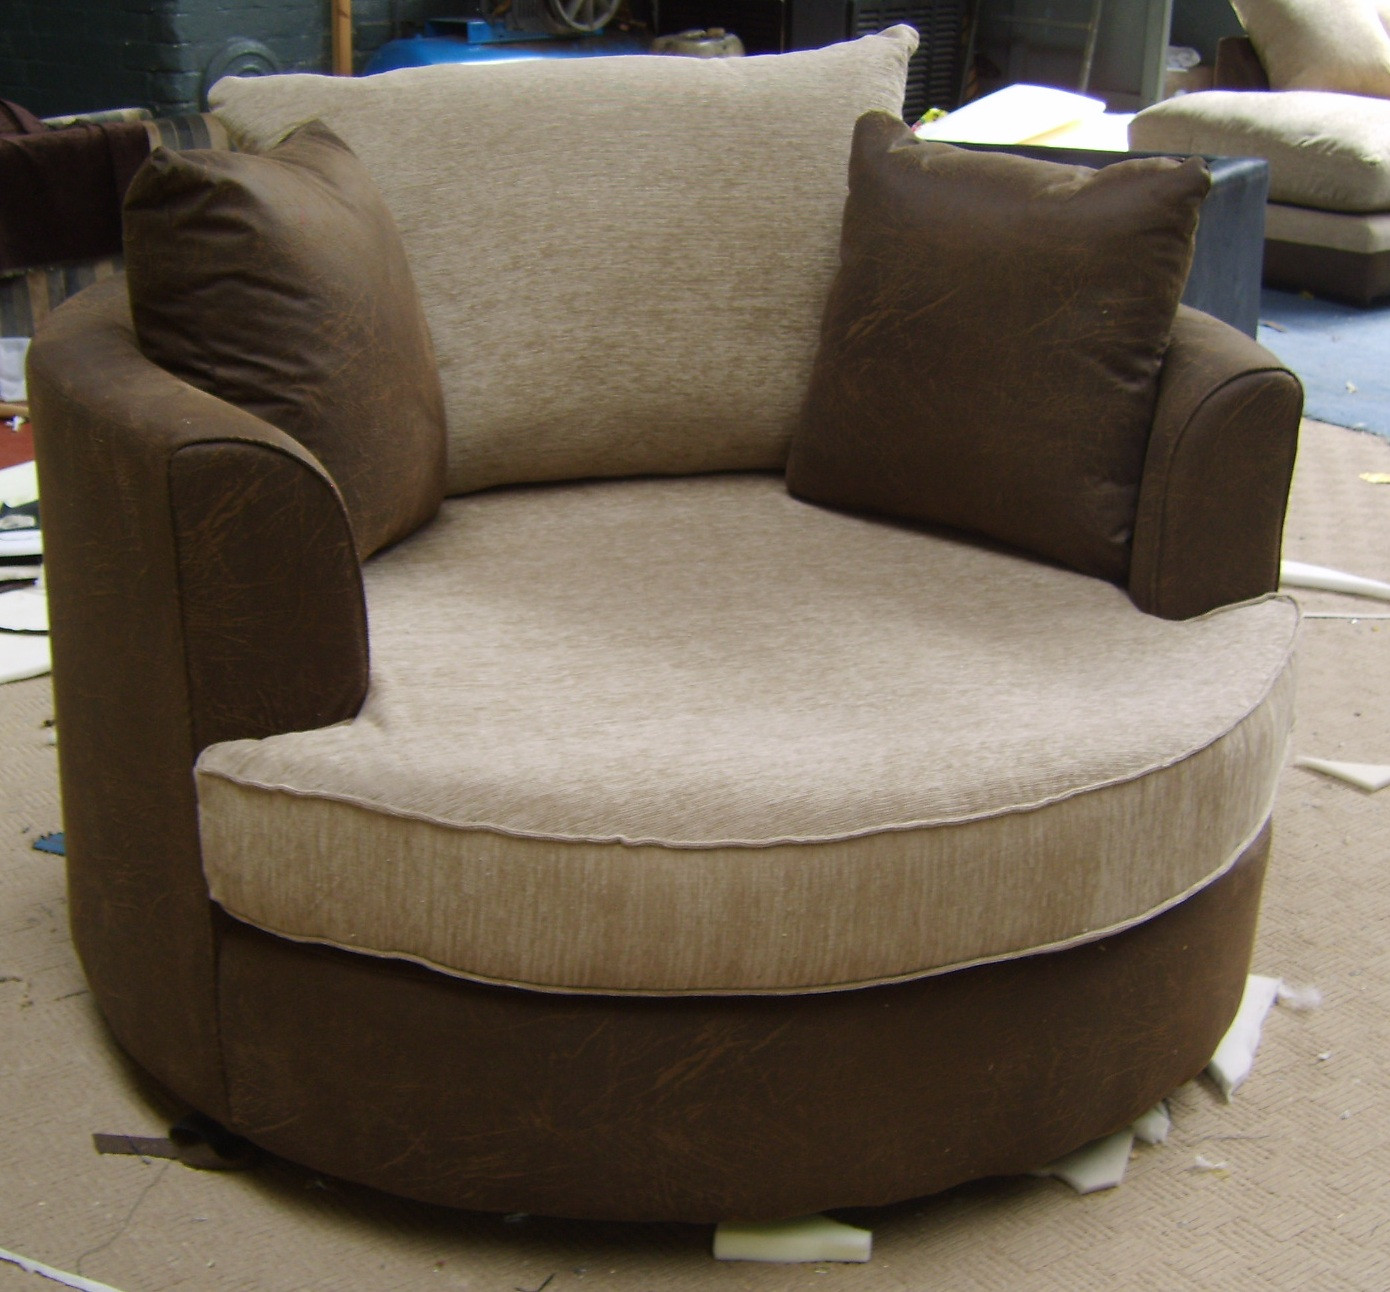 Best ideas about Comfy Reading Chair . Save or Pin Funky Reading Time Now.